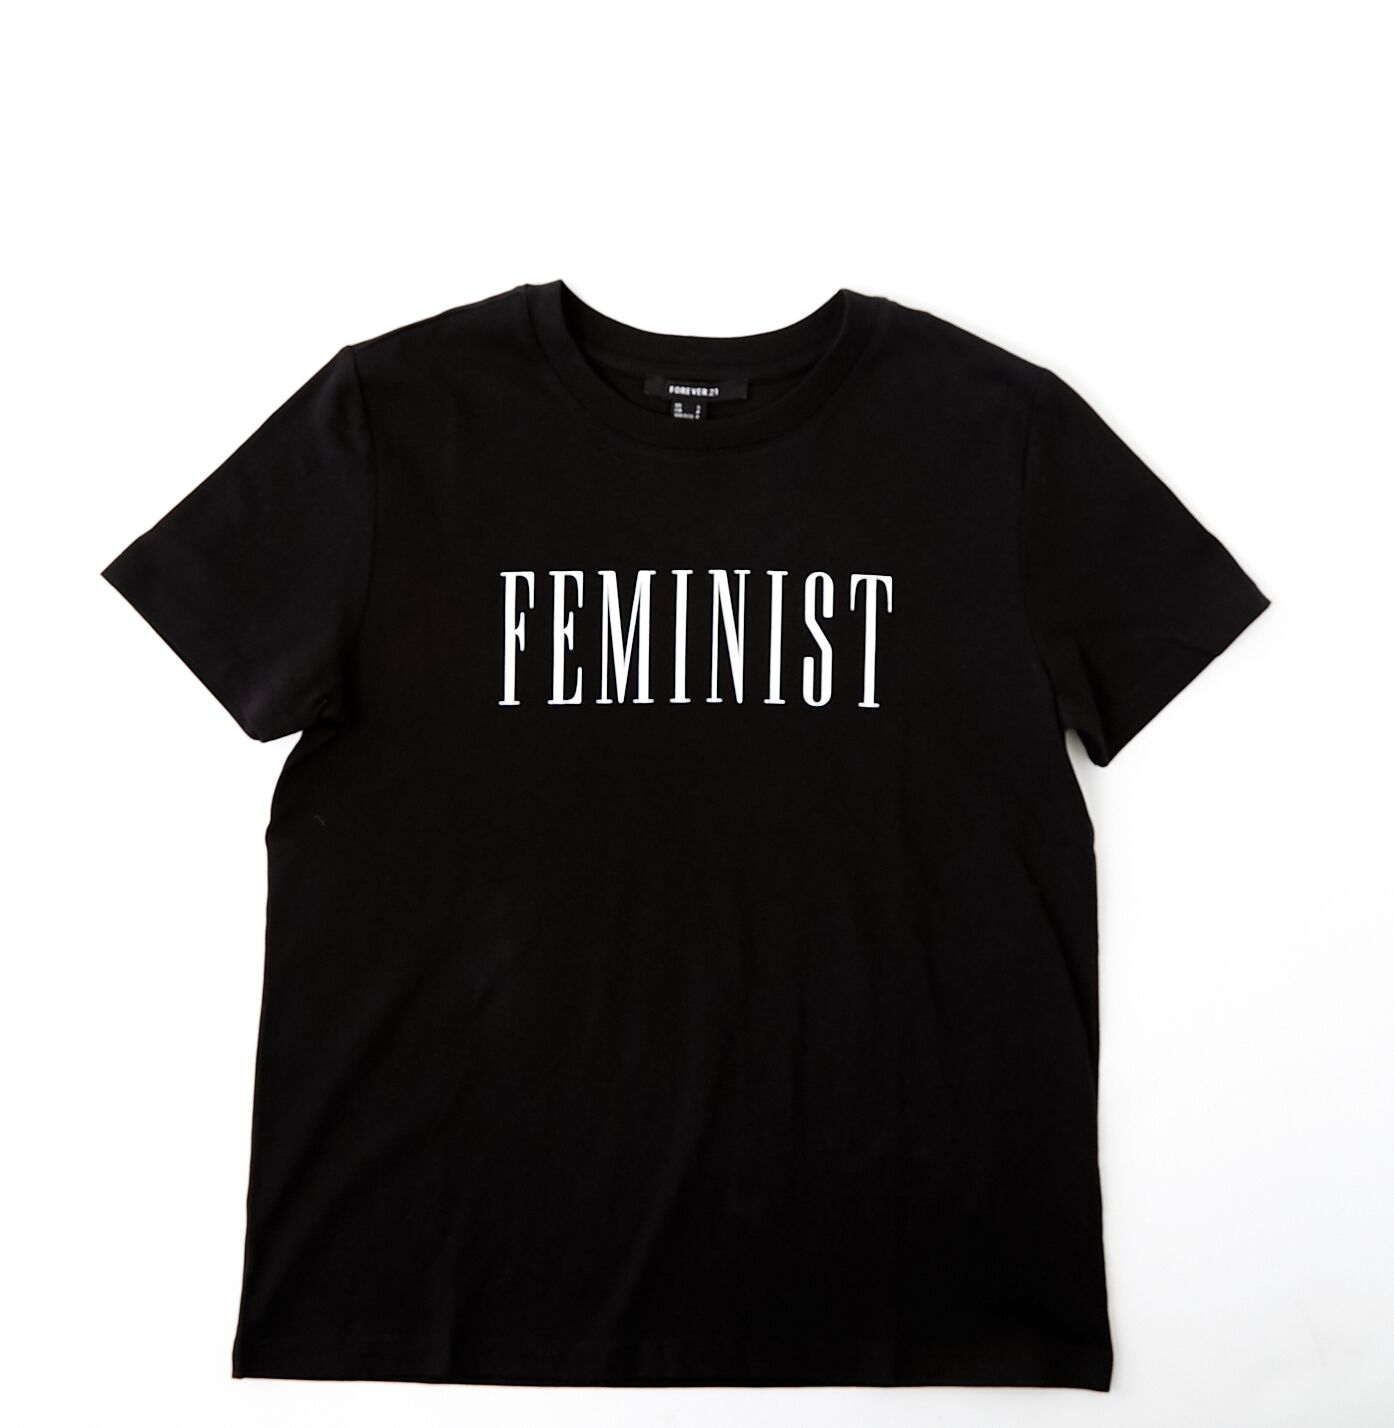 bc008a9d2 Forever 21 launched an International Women's Day collection ...